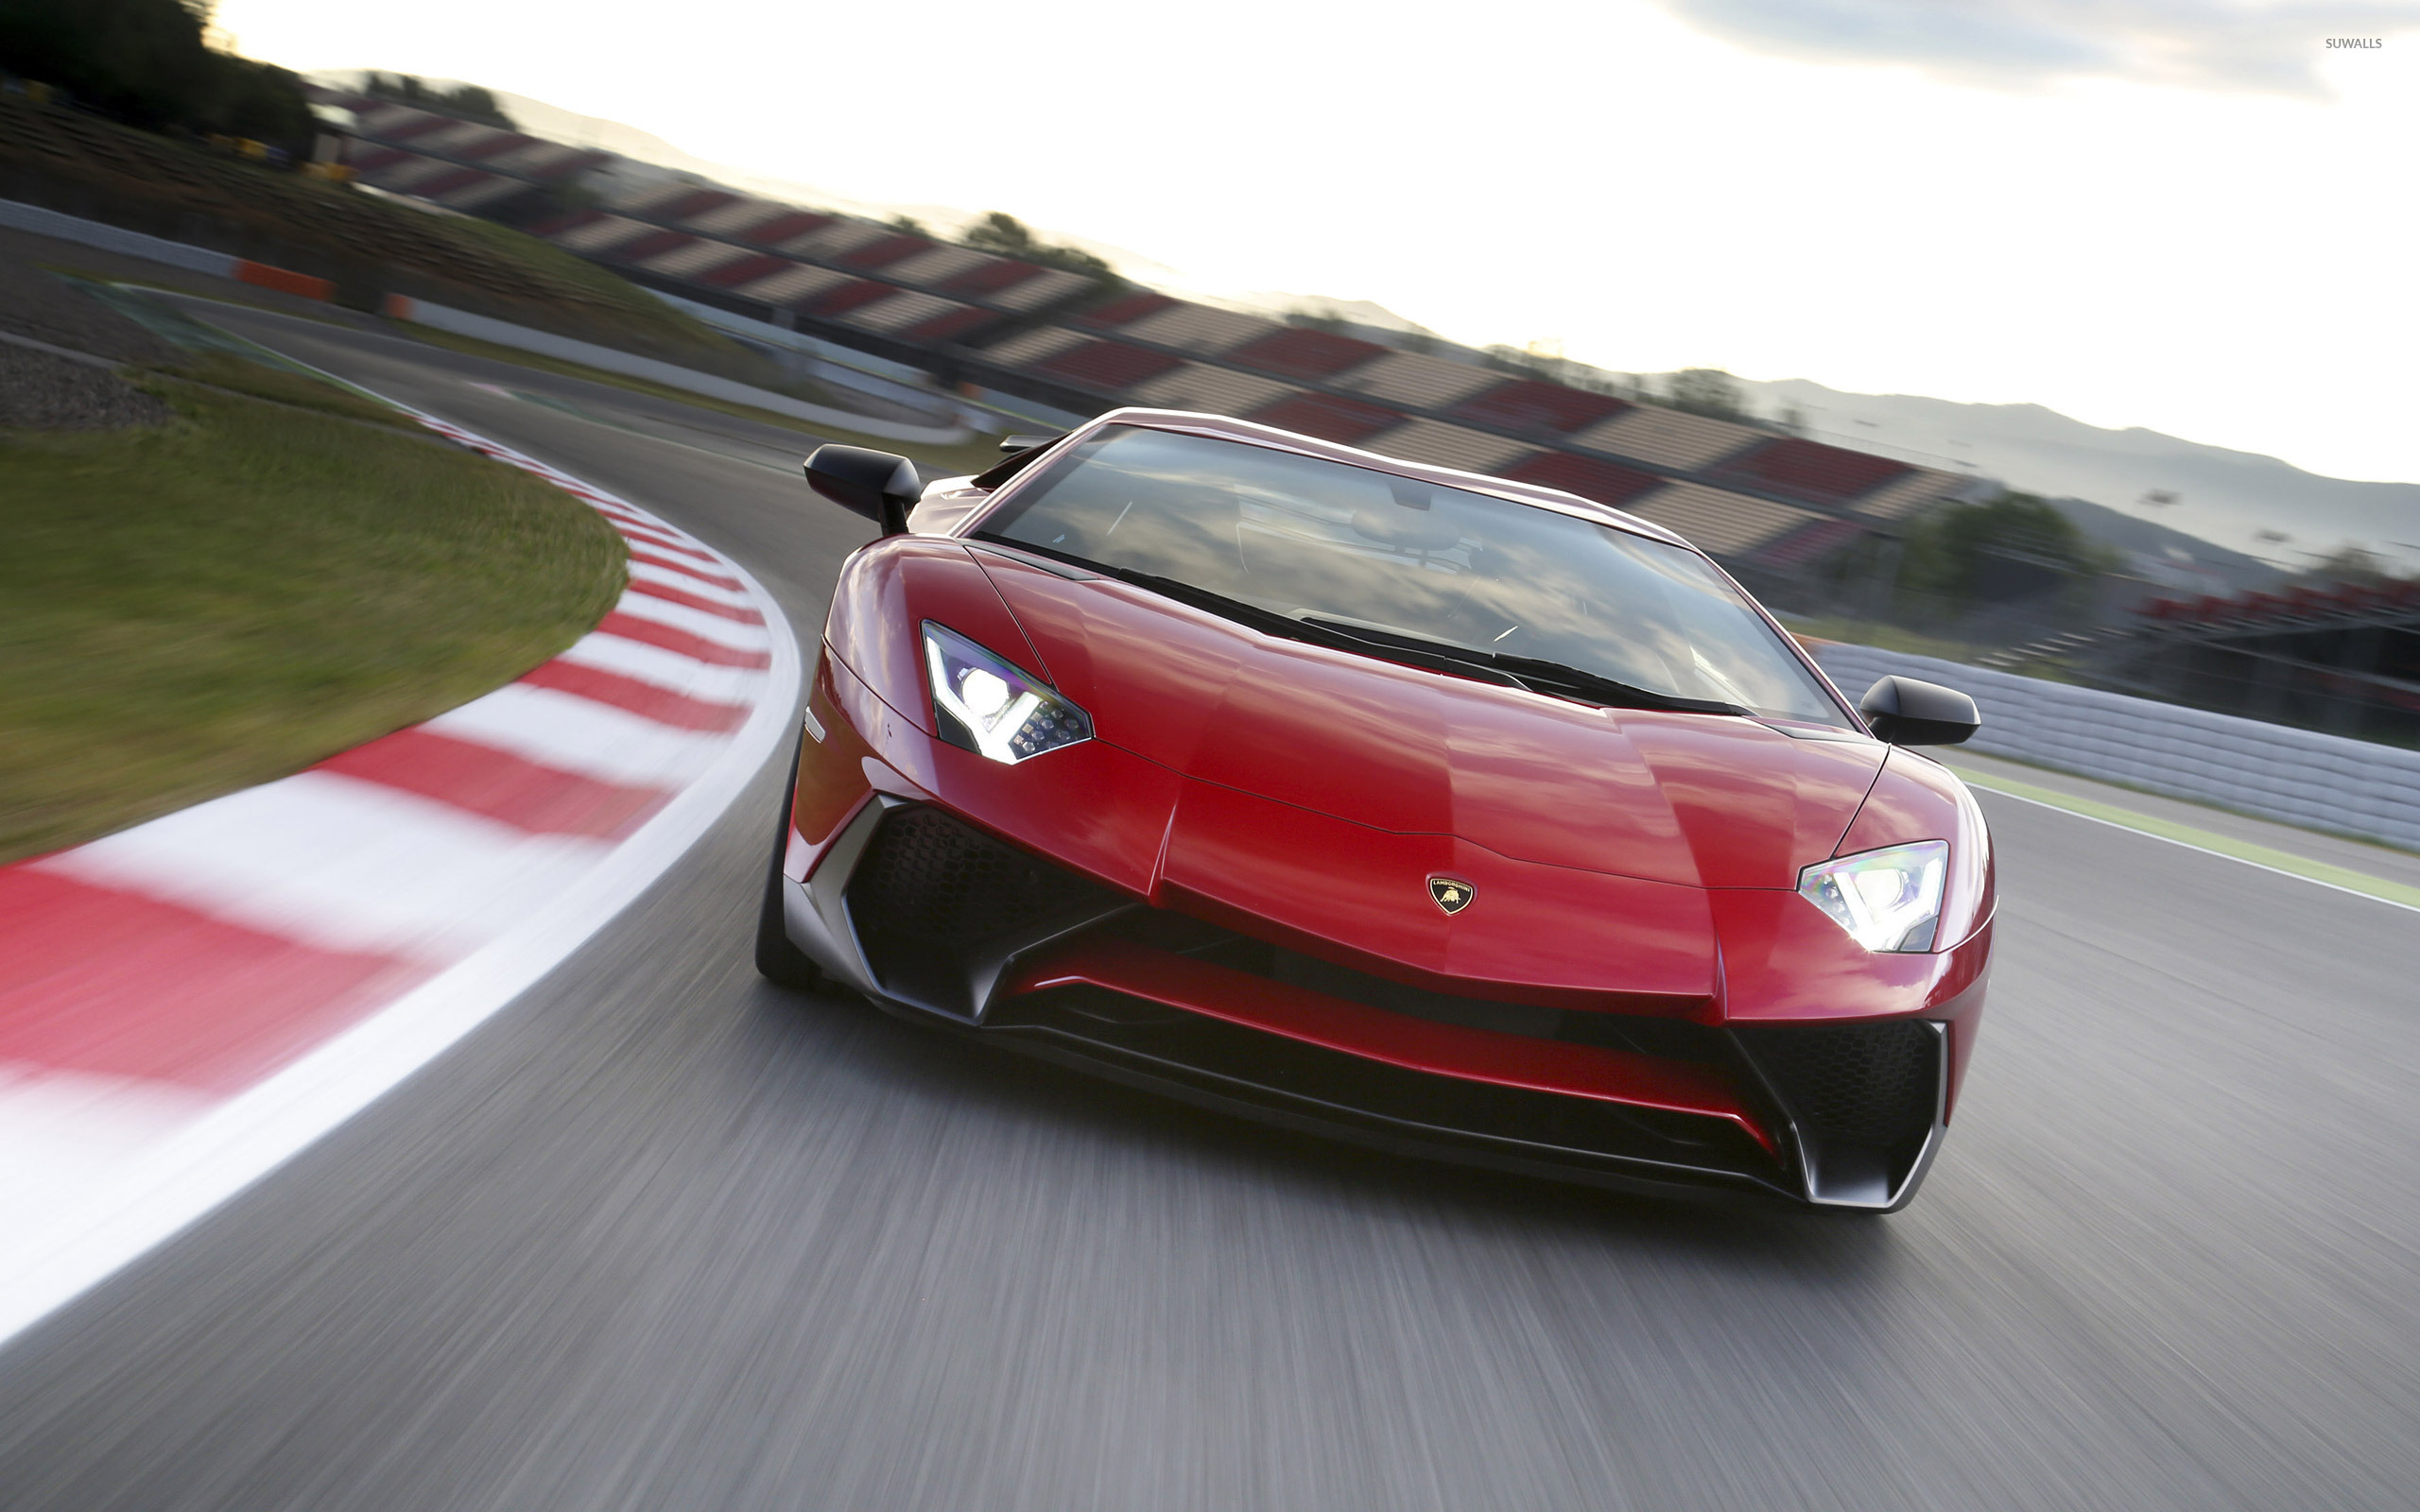 Red Lamborghini Aventador LP750 4 SV On The Racing Track Wallpaper